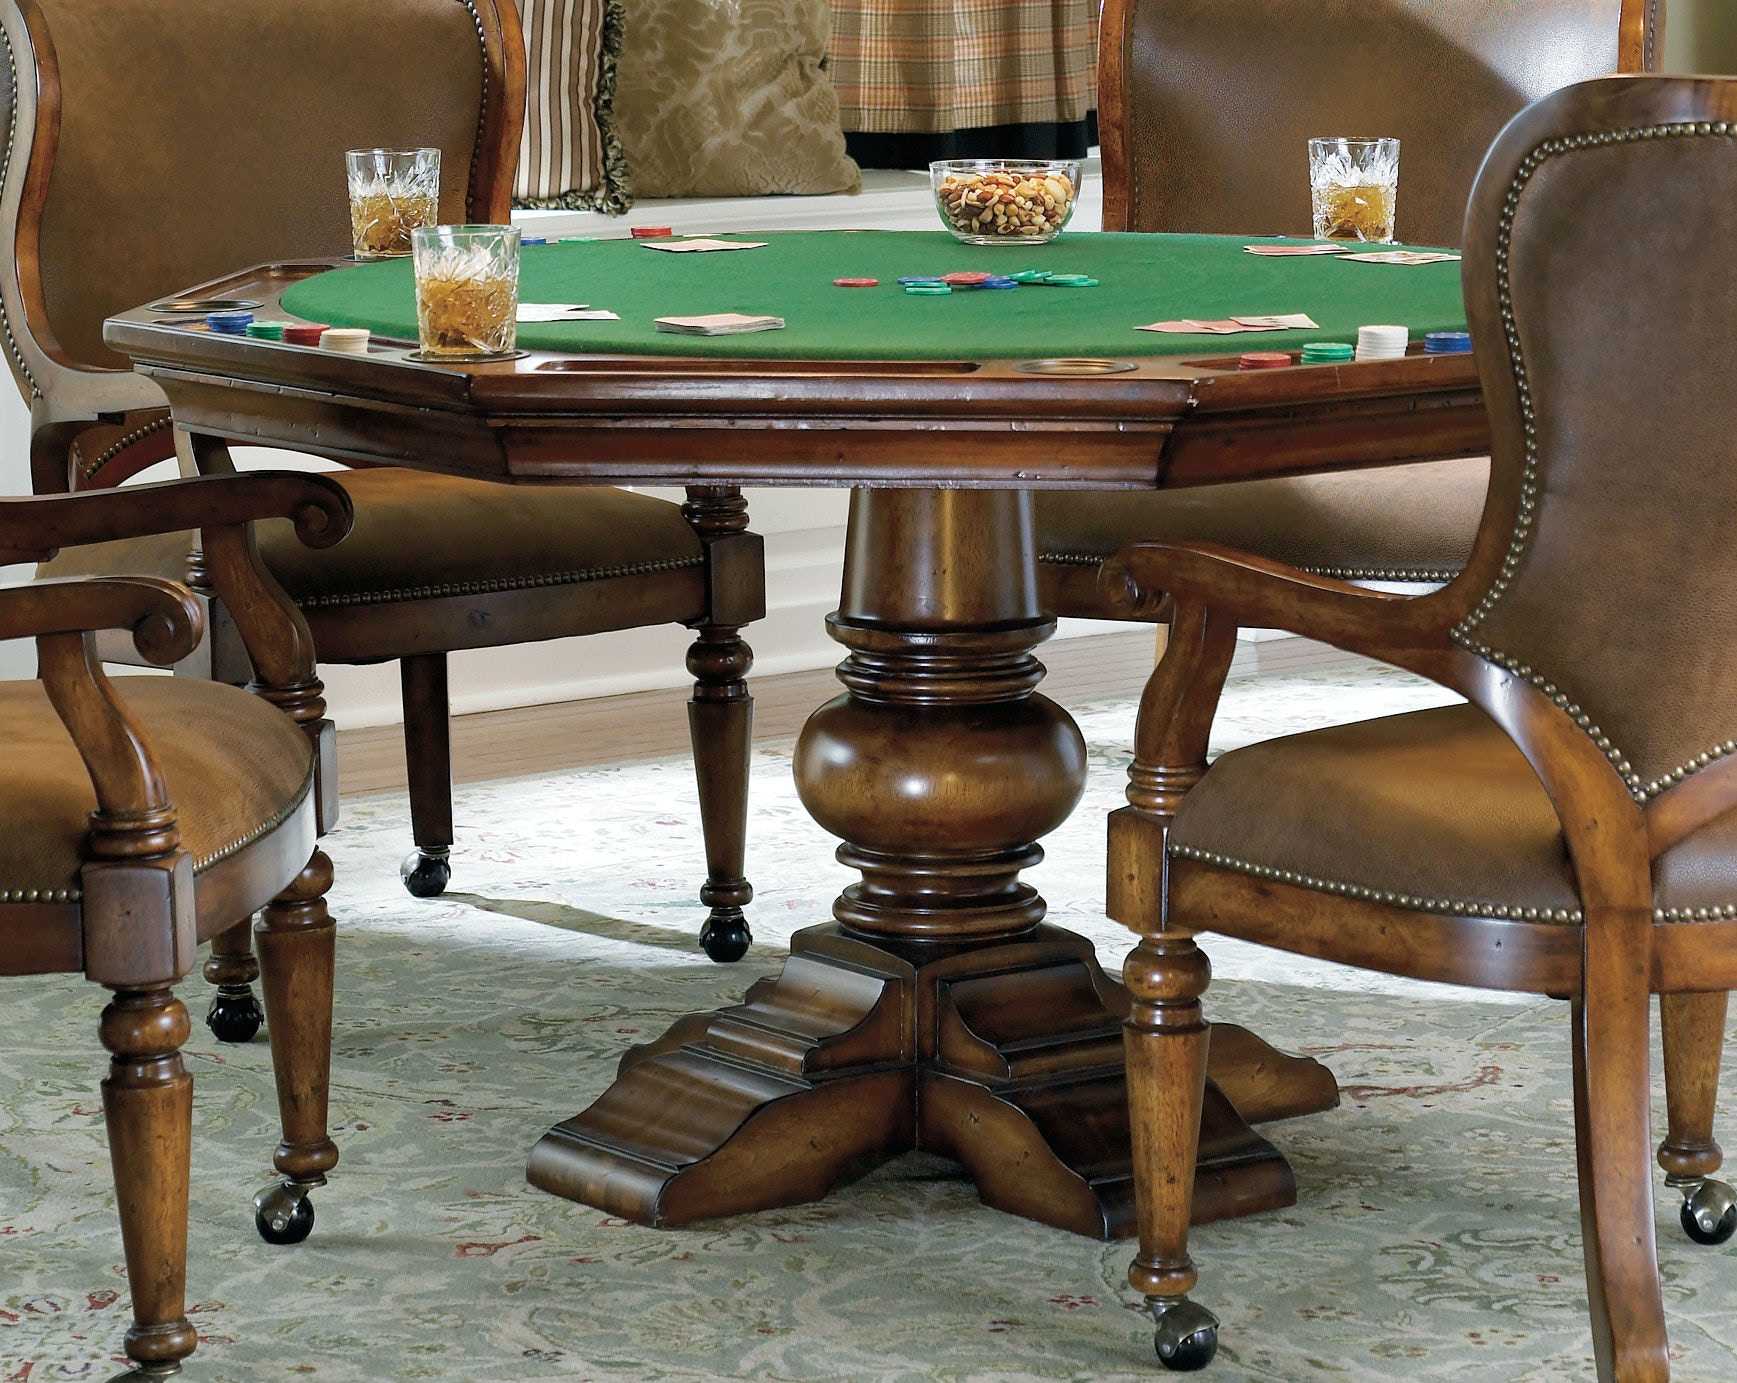 Hooker Furniture Waverly Place Reversible Top Poker Table 366 75 800 ...